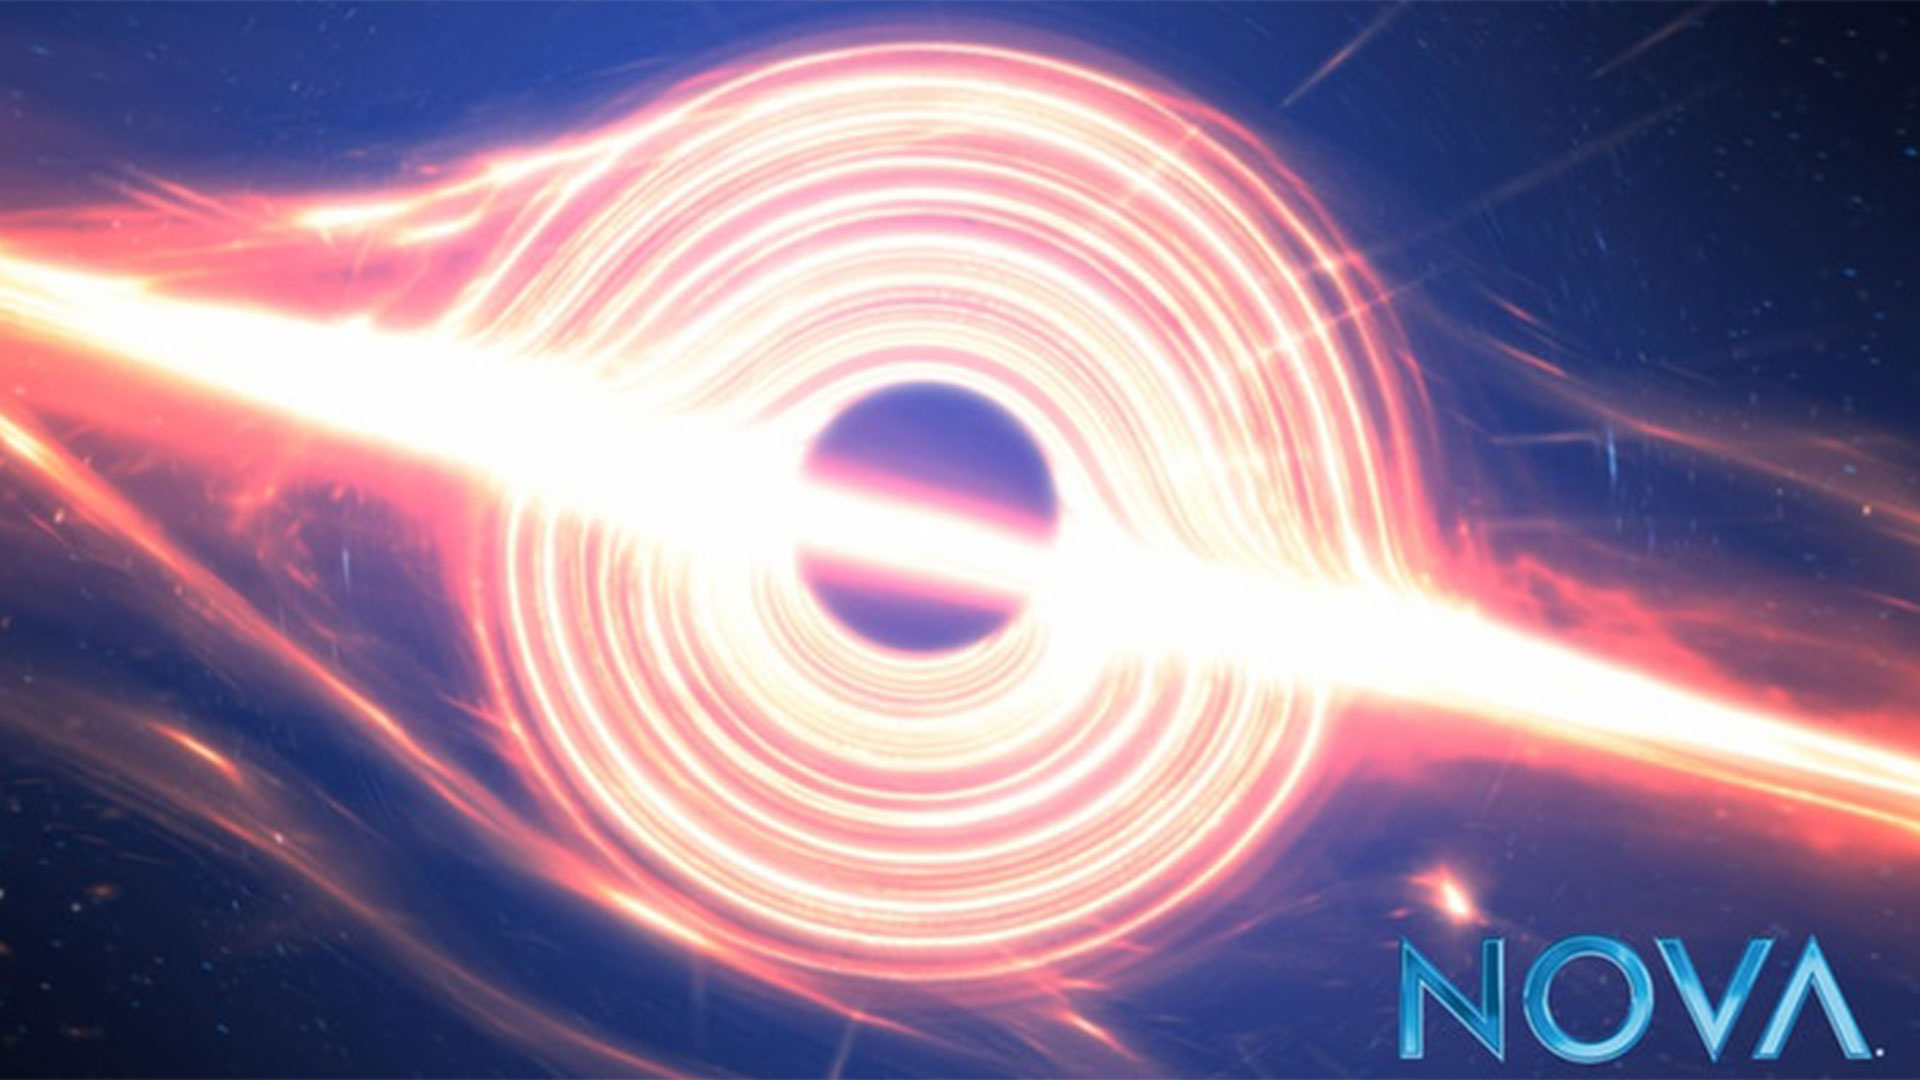 Nova black hole event hero